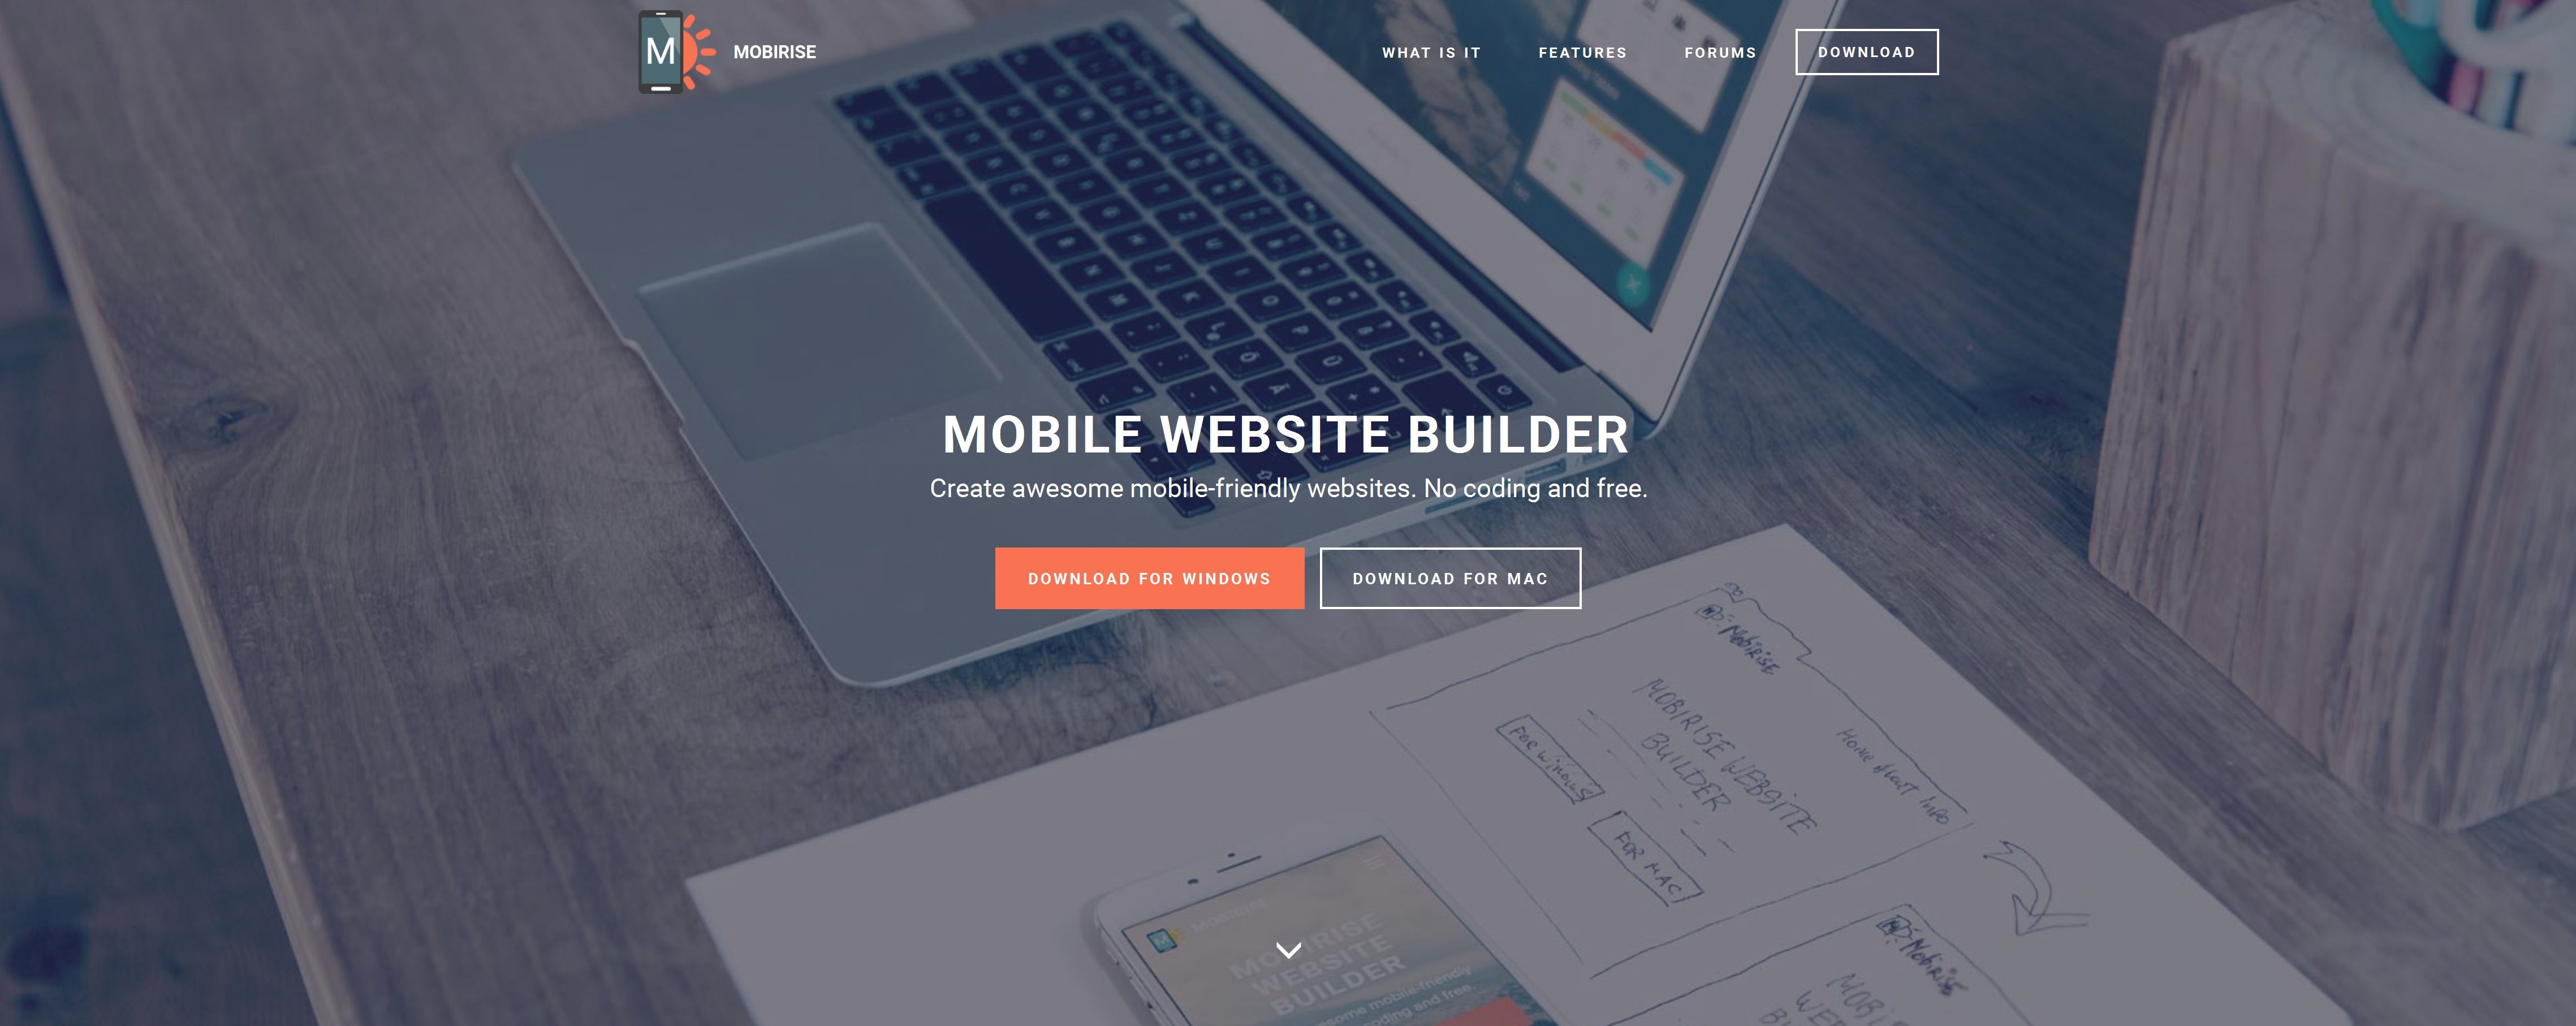 Best Mobile Website Maker Software